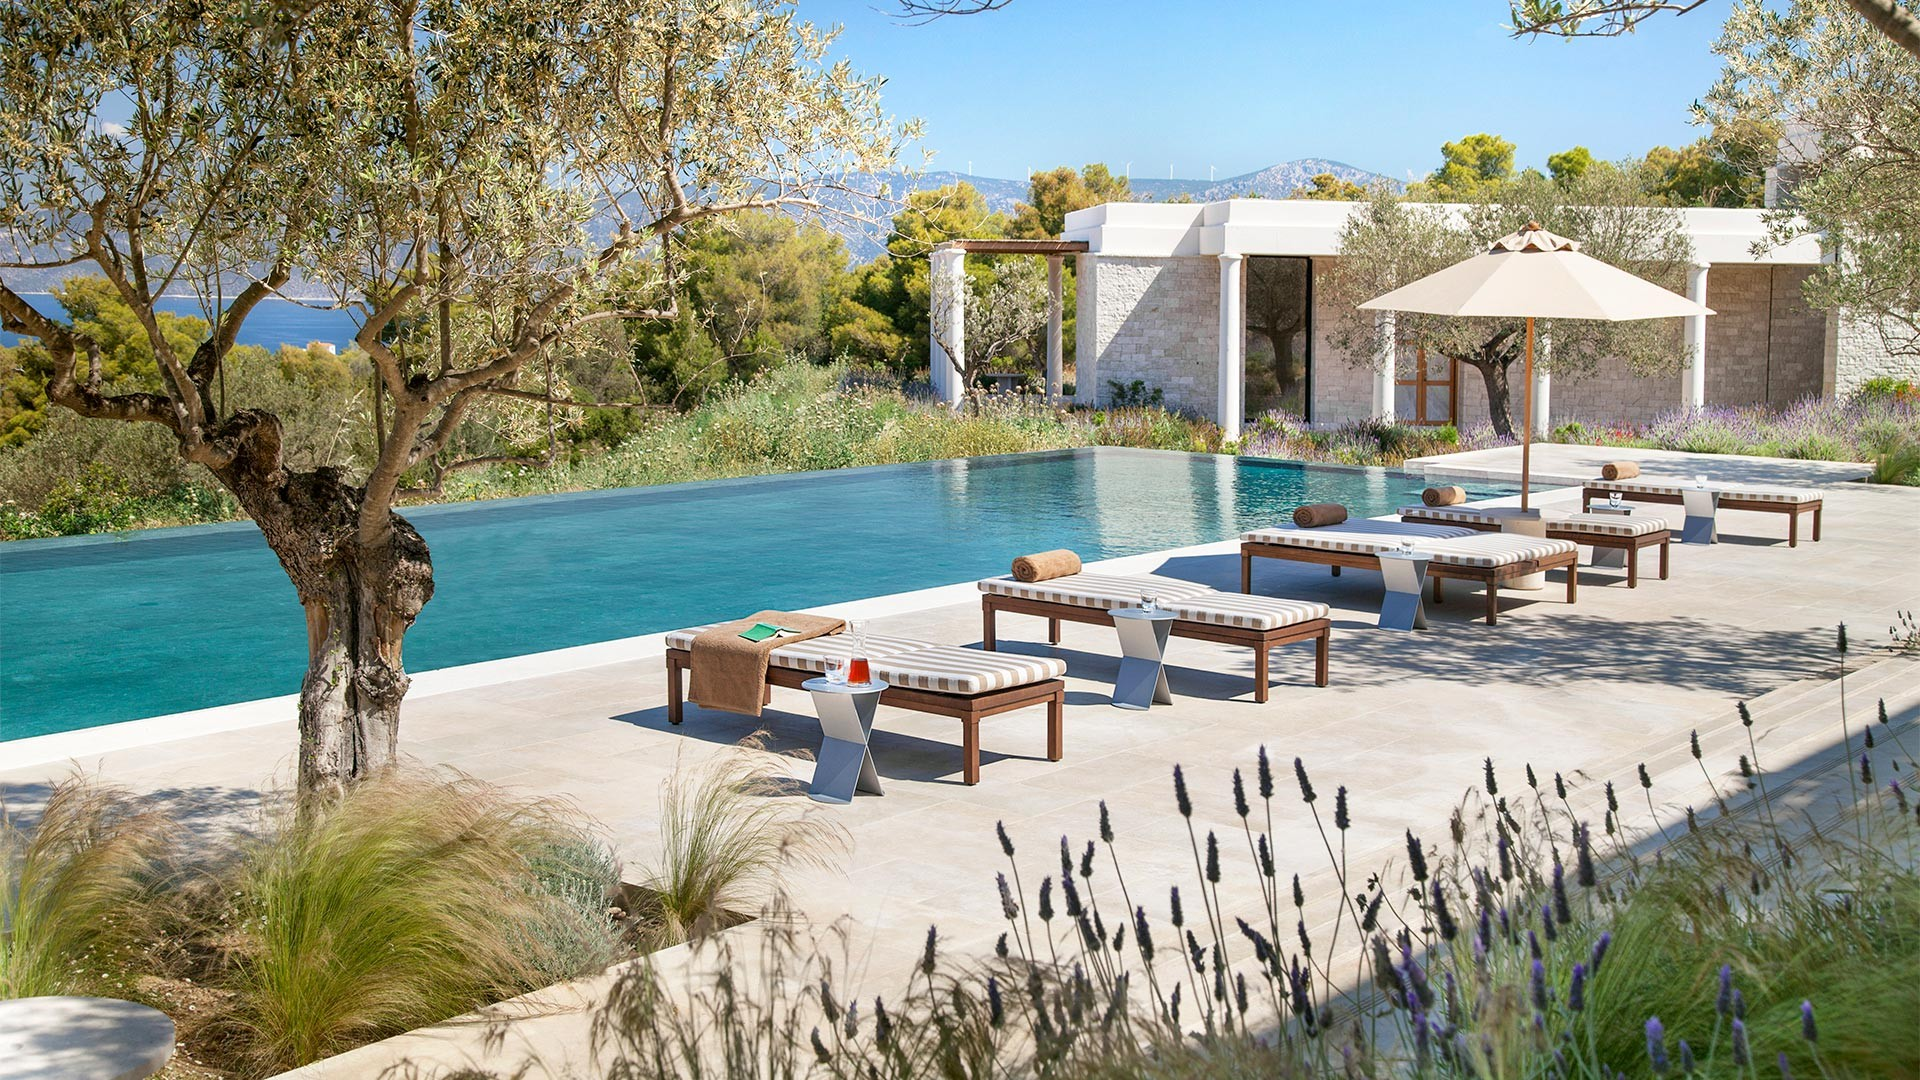 Poolside at Amanzoe luxury resort